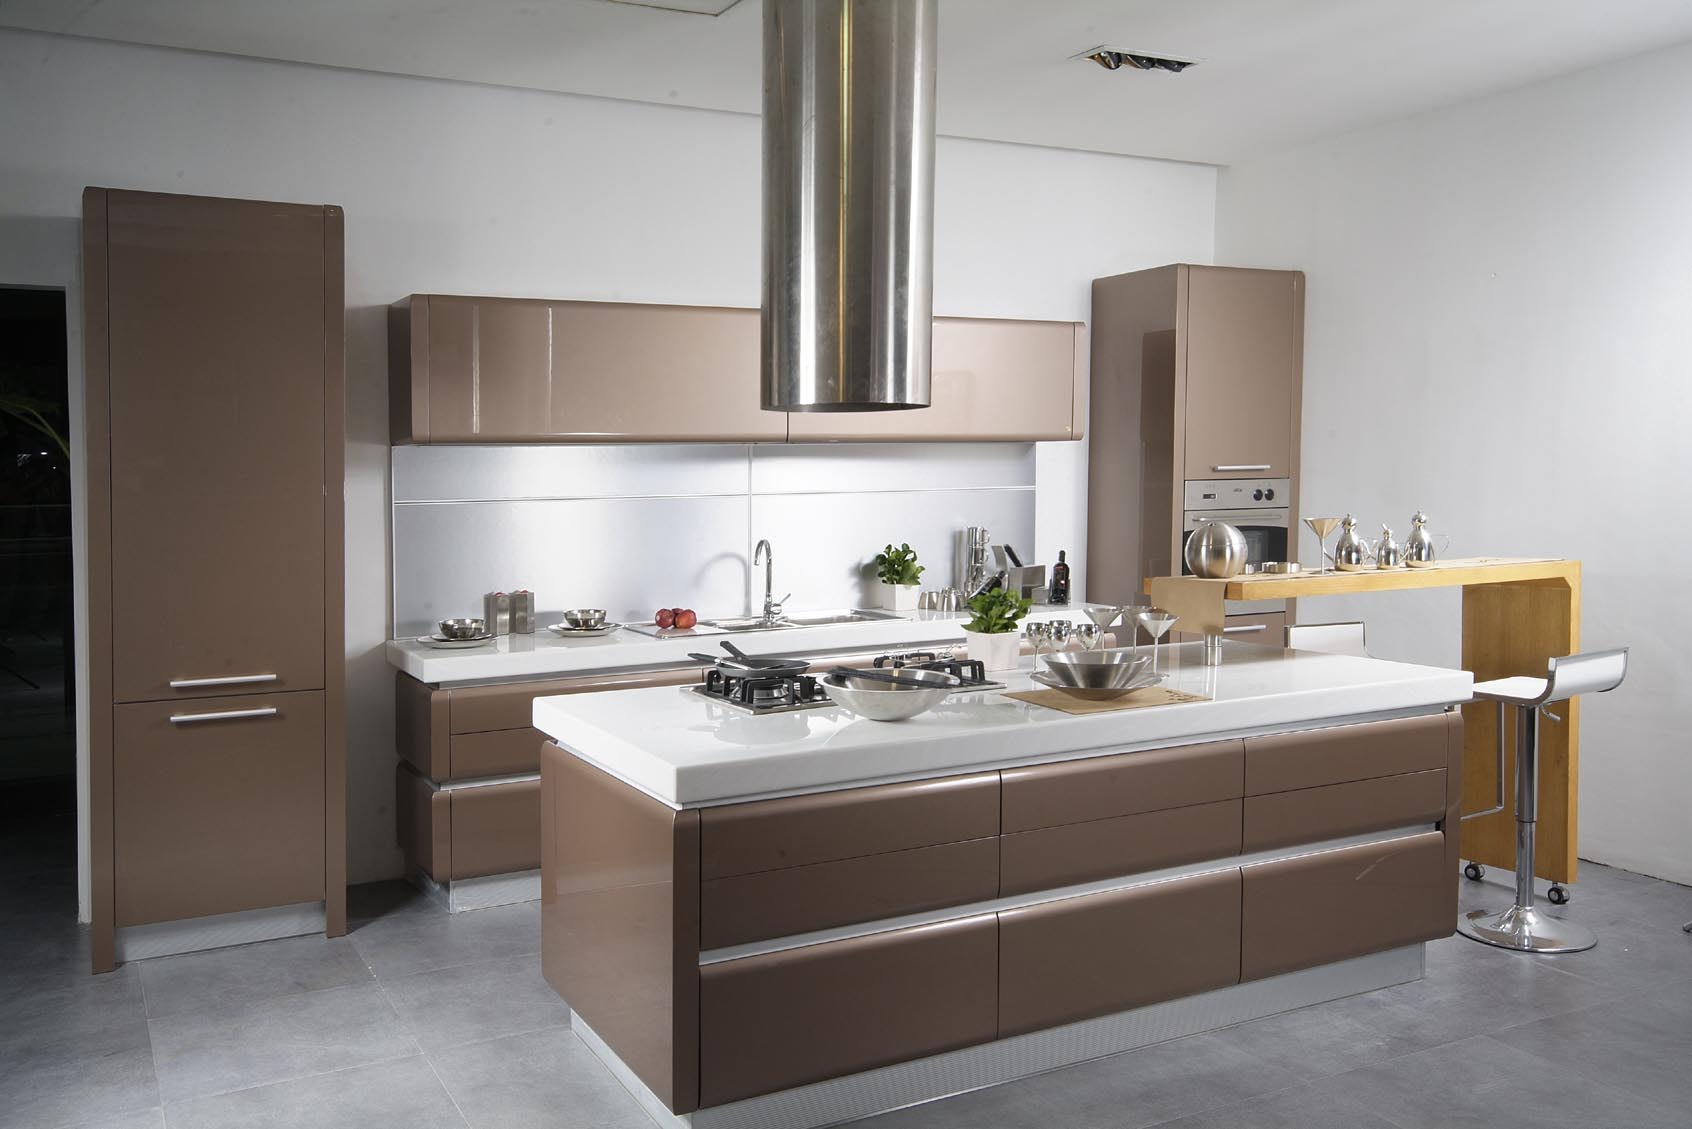 Small Kitchen Design (View 2 of 10)